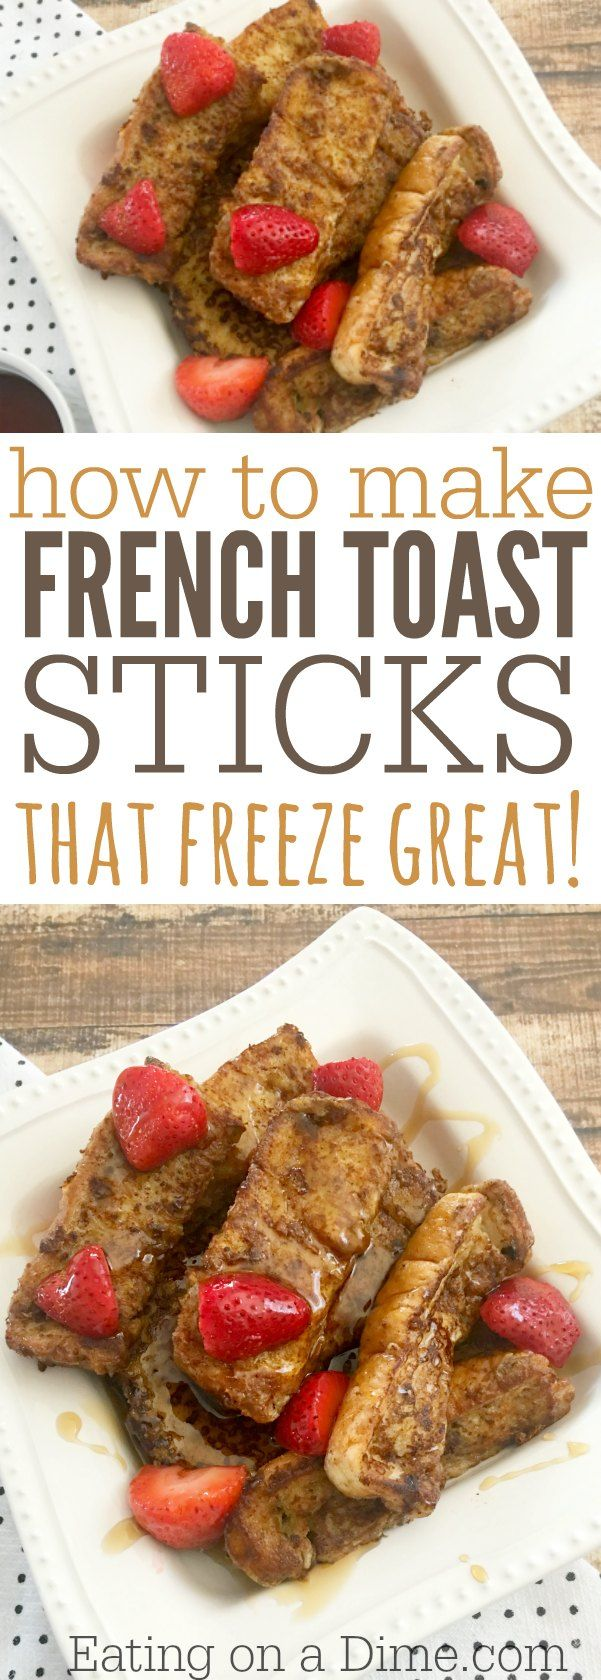 French Toast Sticks recipe is easy to make and the entire family loves it. I know you are going to love this Simple french toast recipe. It is one of my favorite breakfast ideas.